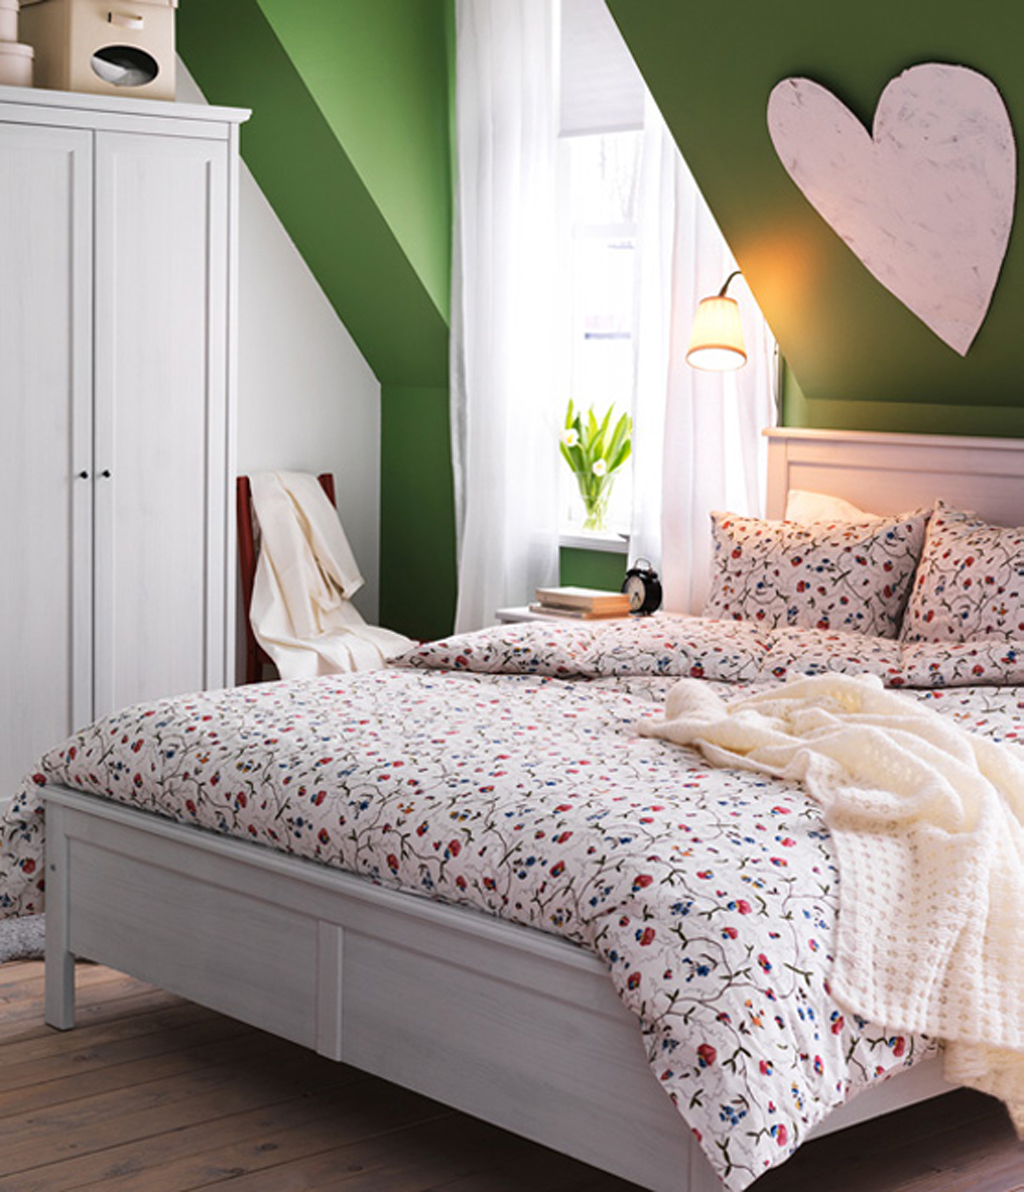 Bedroom Inspiration Ikea Lovely Ikea Bedroom Inspirations 2011 Iroonie